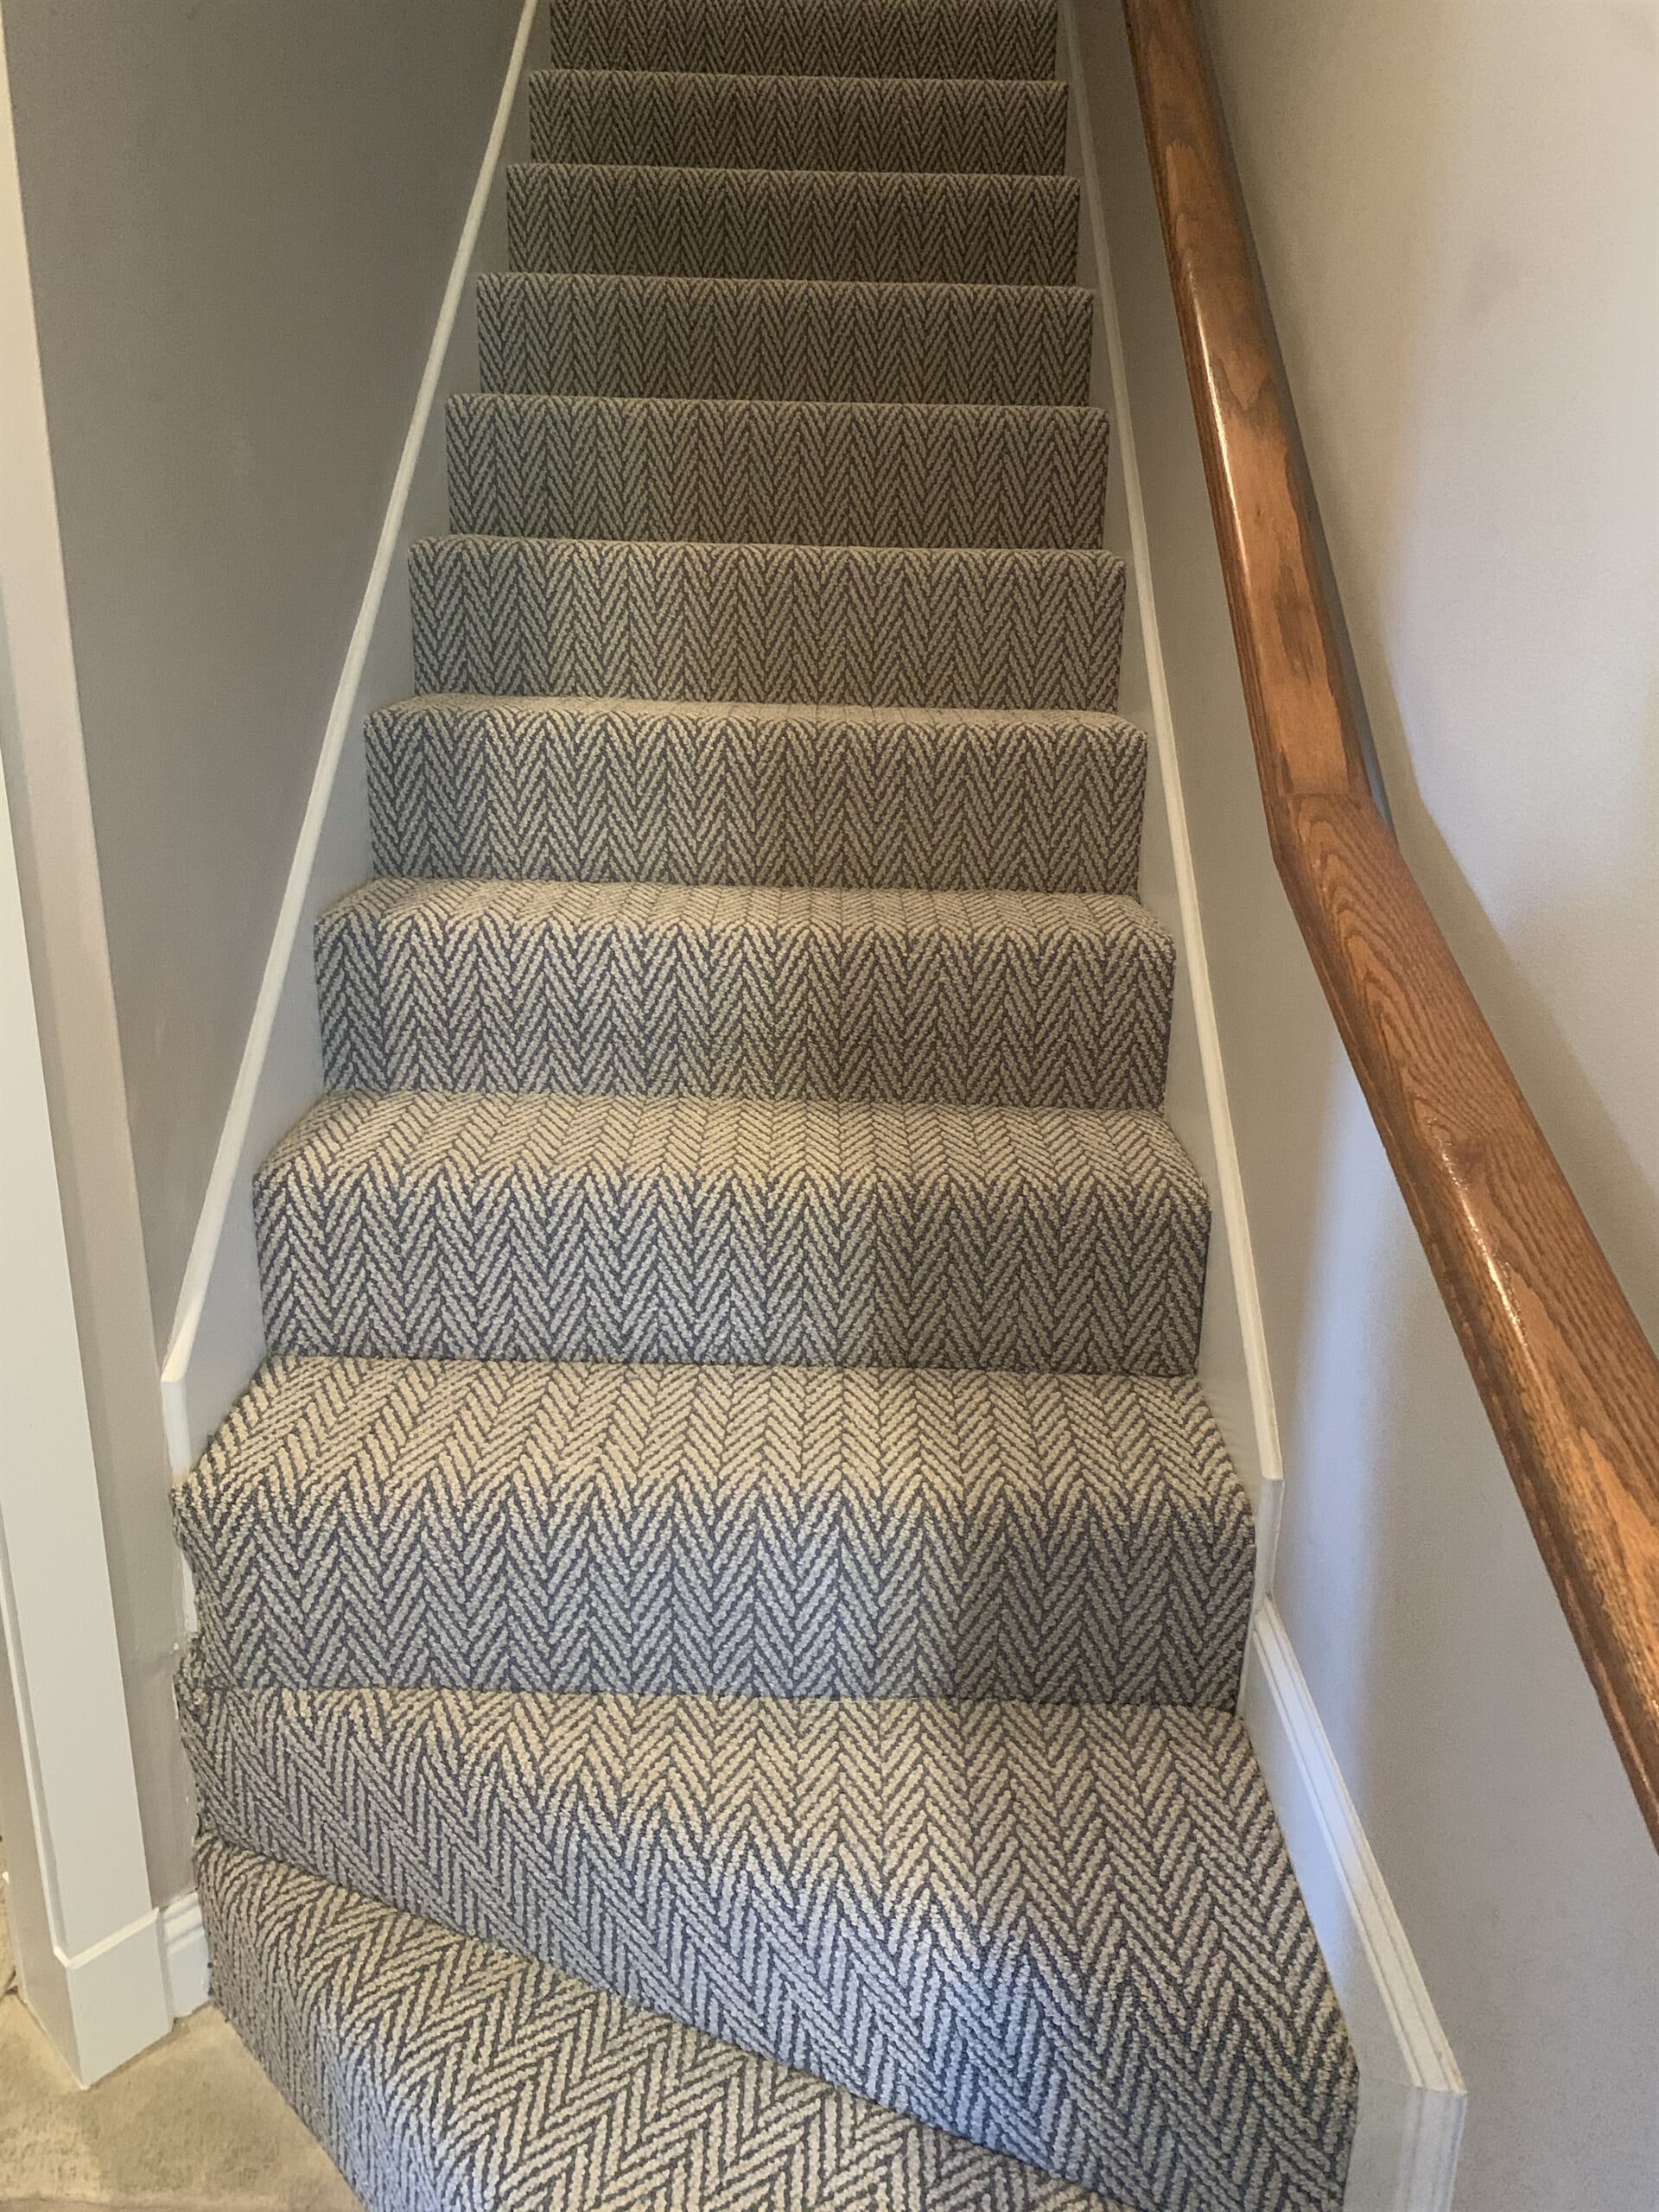 Textured stair carpet in Beaumont, TX from Odile's Fine Flooring & Design